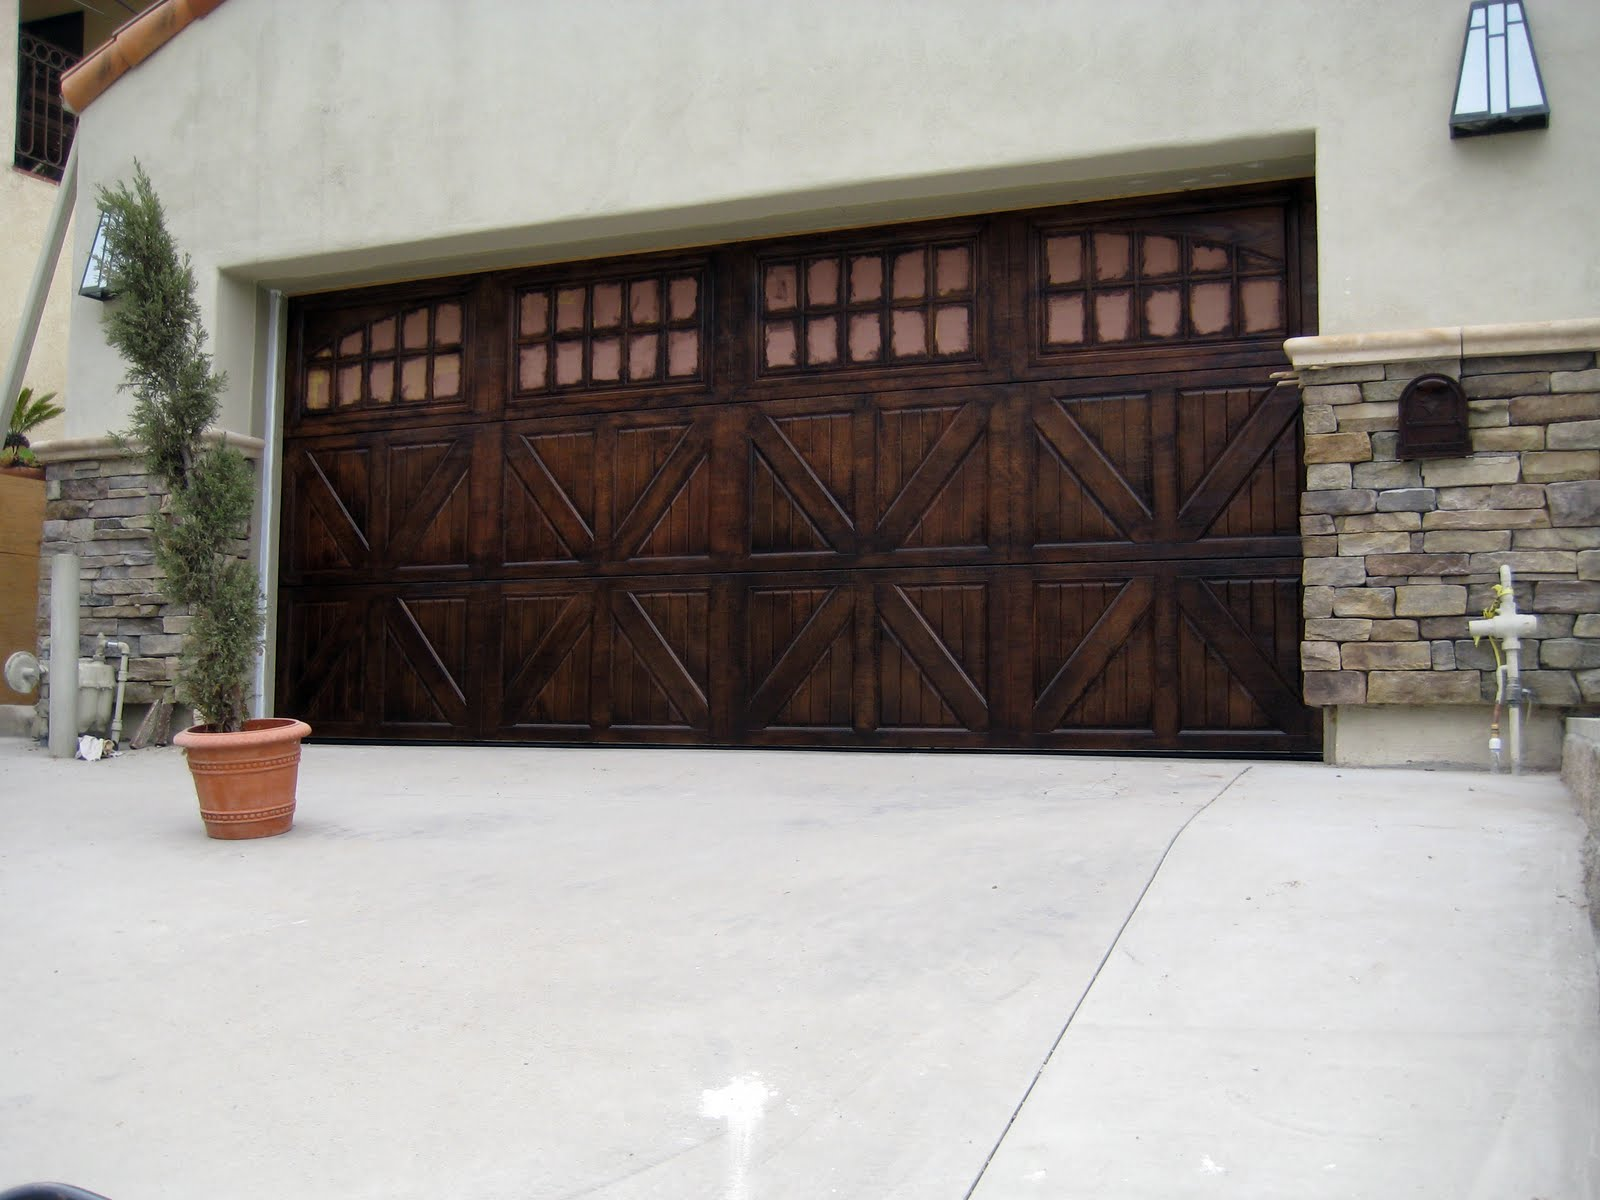 Faux Wood Doors | Paper Paint Wood Garage Doors Cost on barn doors cost, wood countertops cost, garage door springs cost, wood stairs cost, wood bedroom doors cost, wood siding cost, wood tile cost, wood cabinets cost,